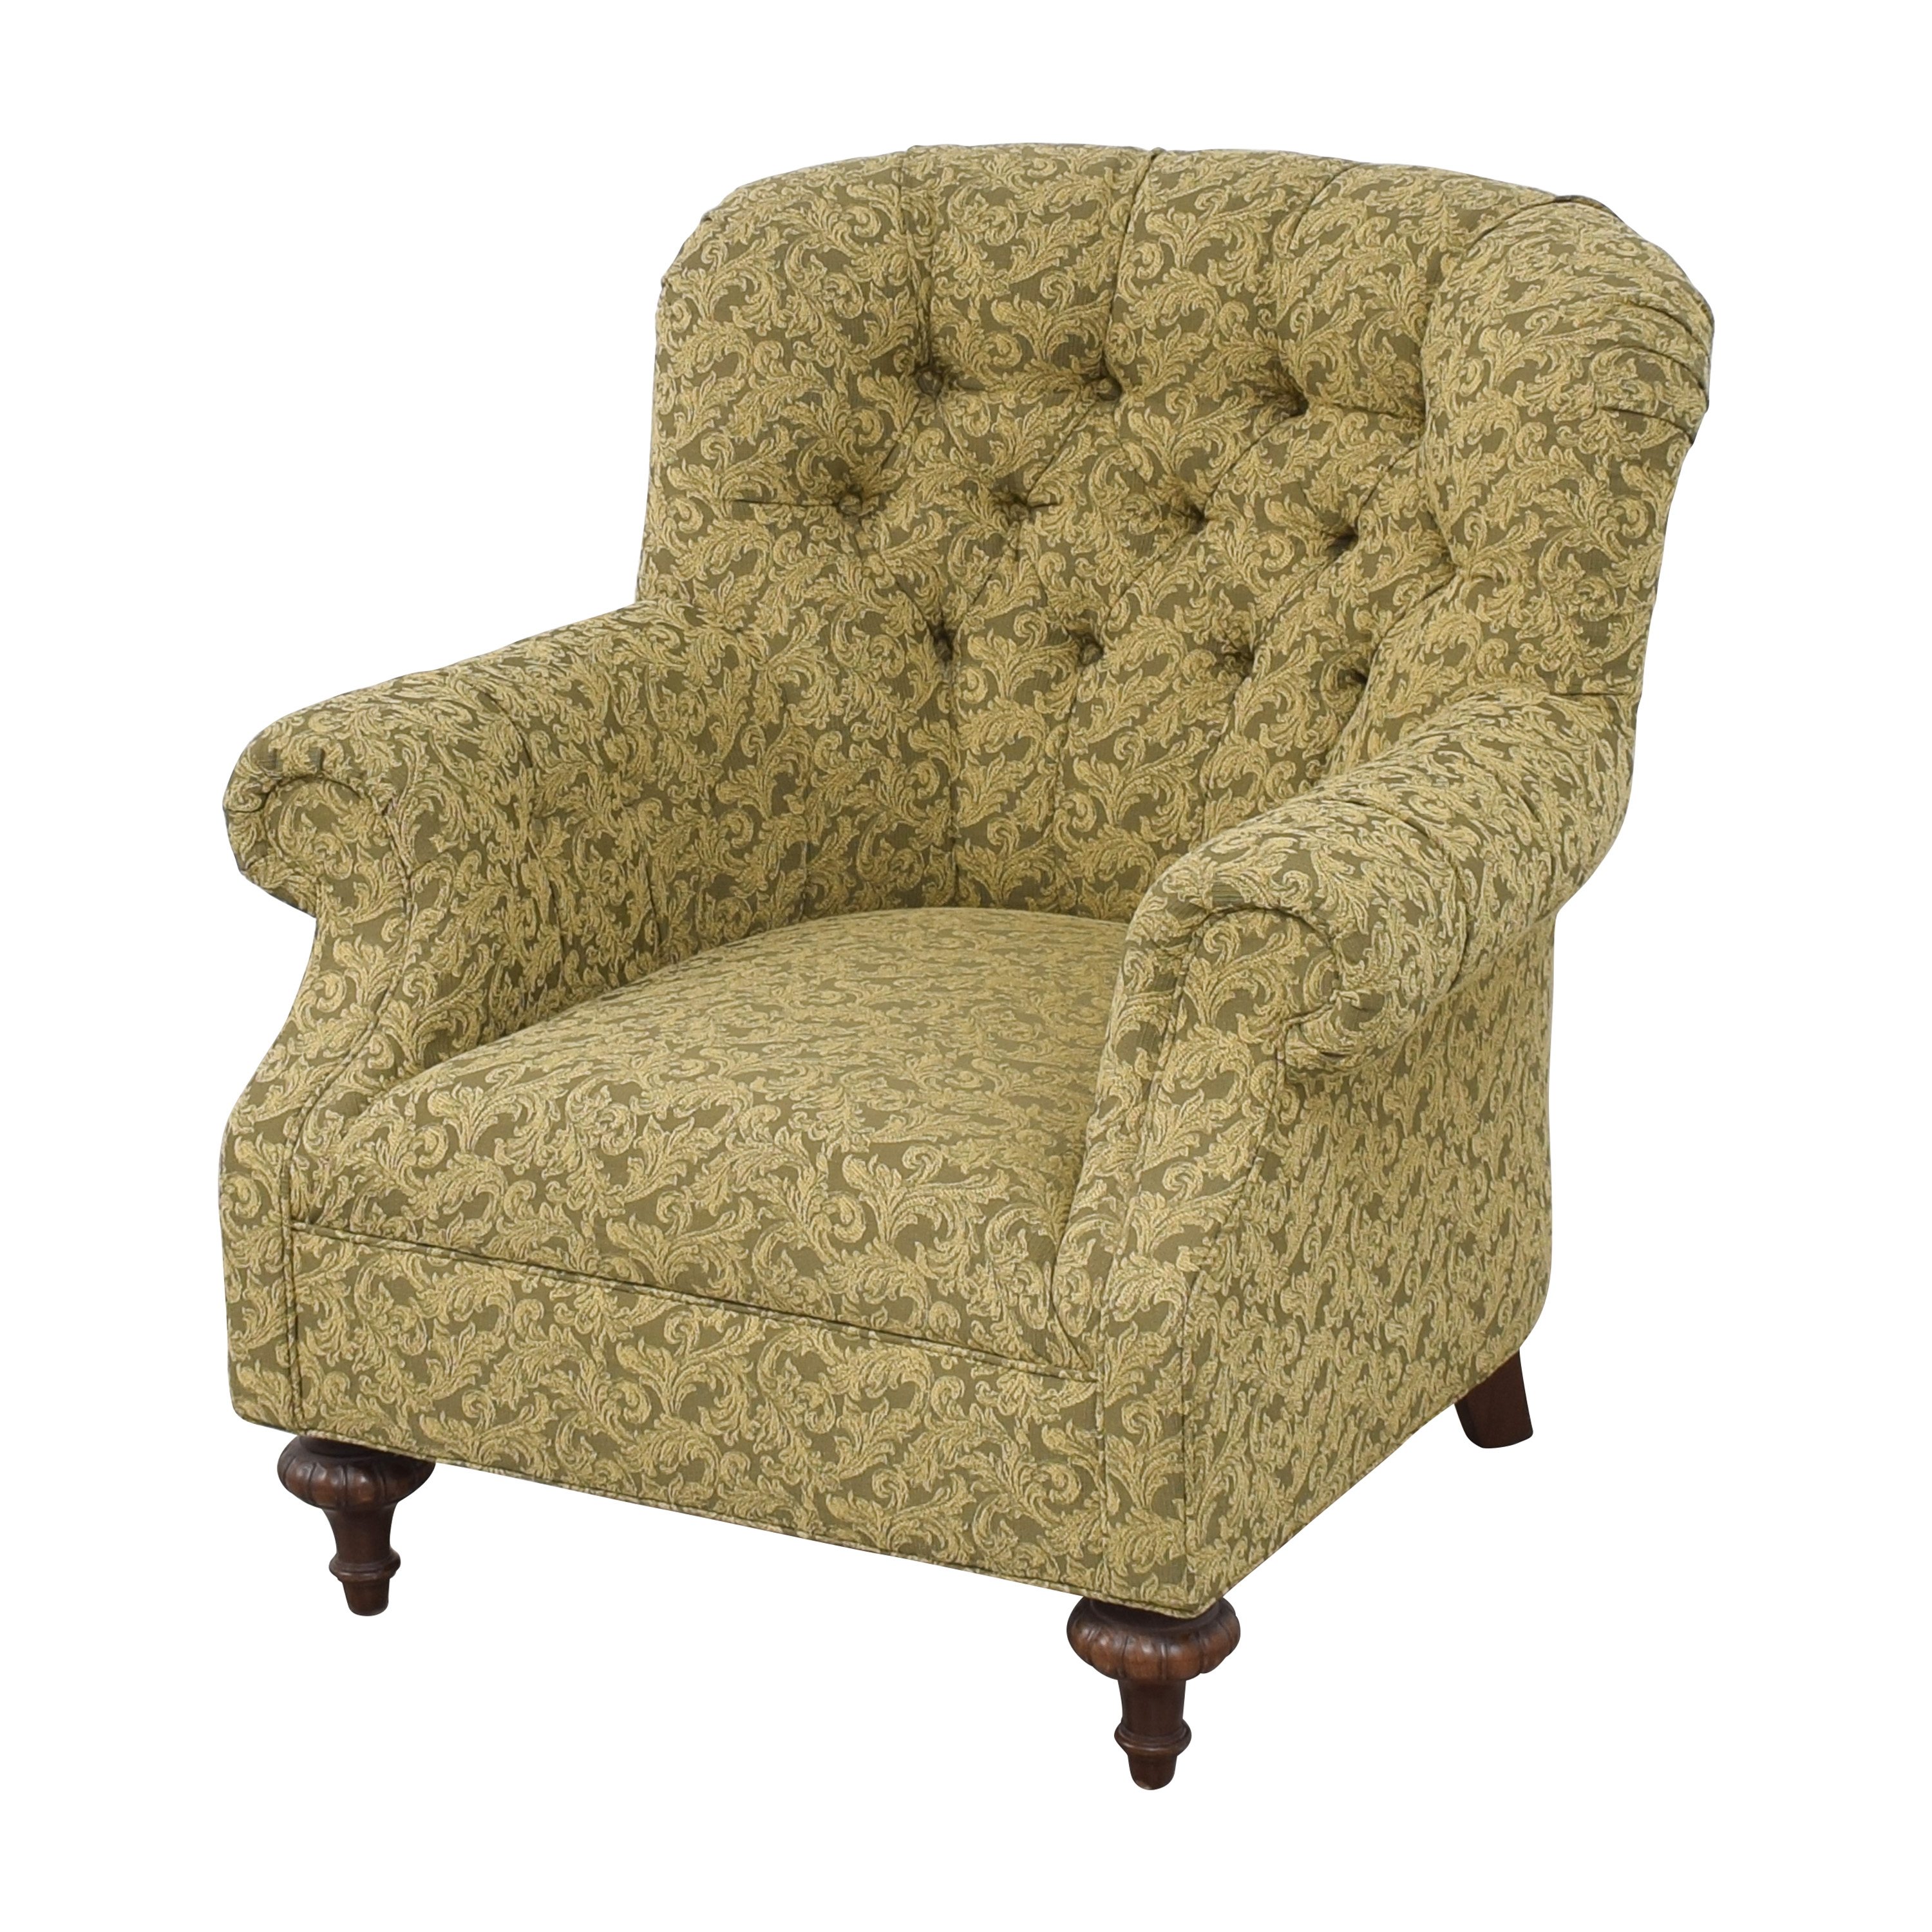 Domain Home Domain Home Tufted Roll Arm Accent Chair on sale